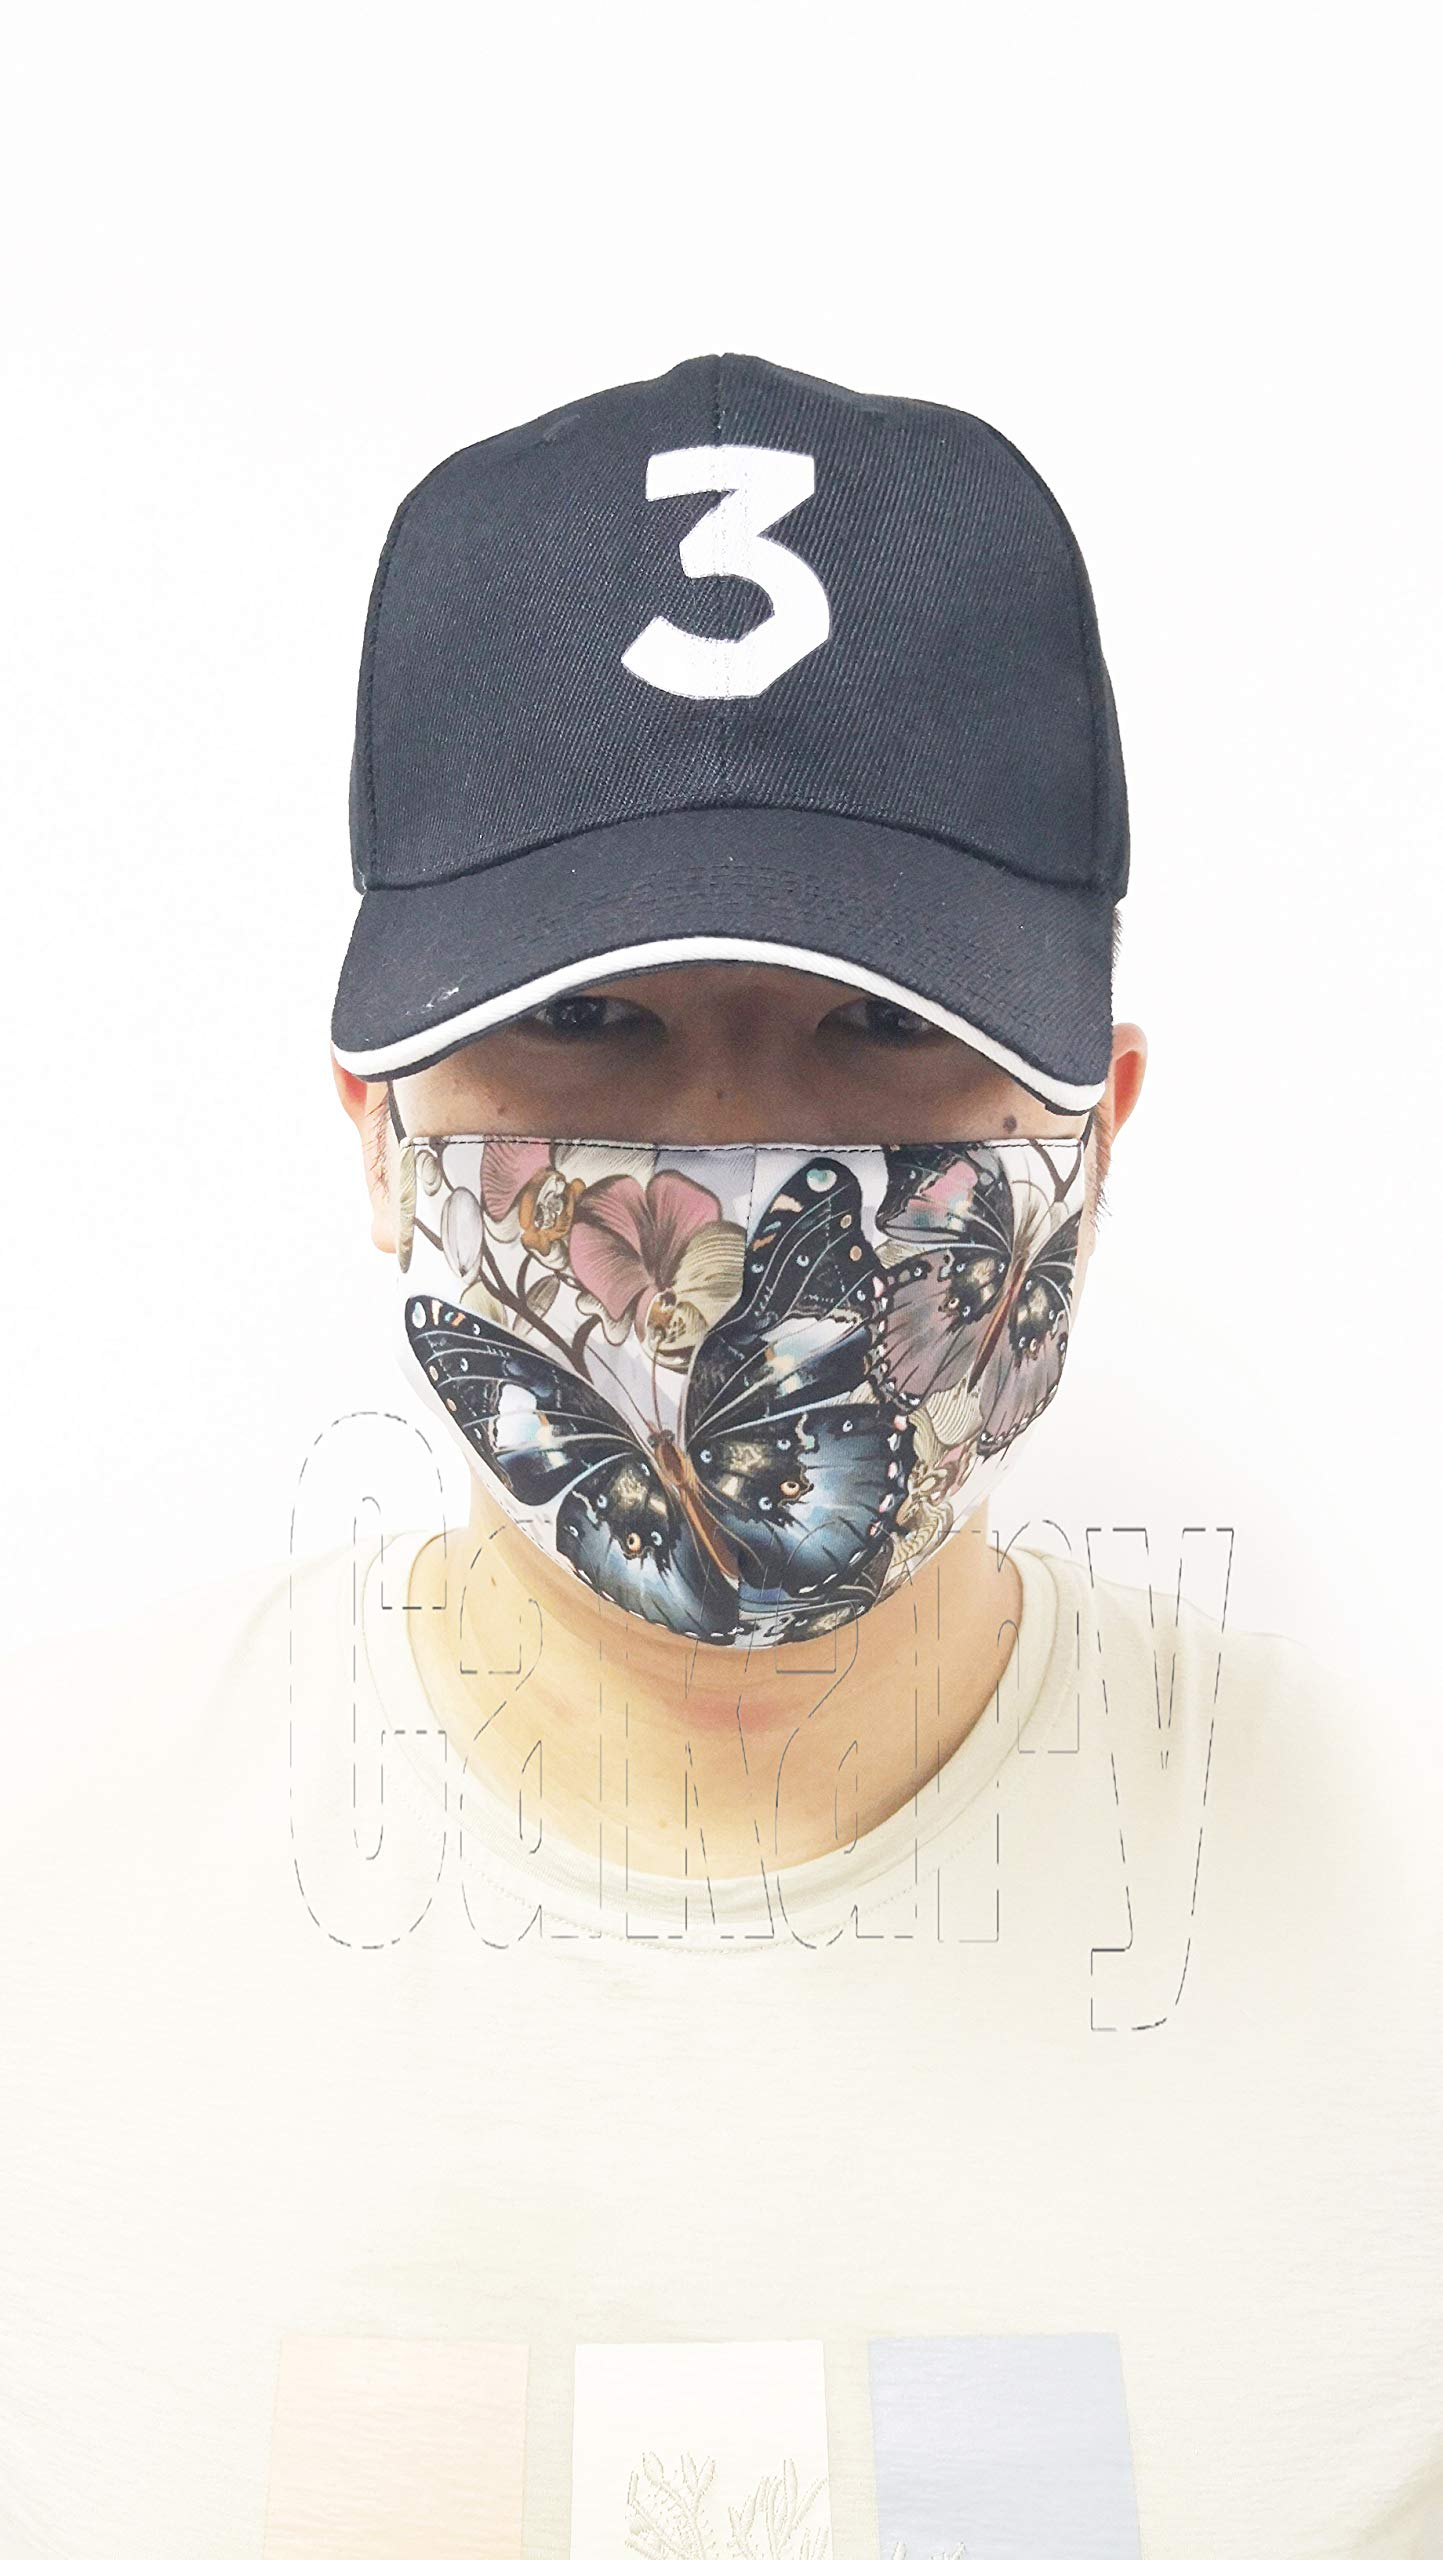 N7bloom Boys Winter Warm Mouth Anti-Dust Flu Face Mask Orchid Butterfly by N7bloom (Image #7)